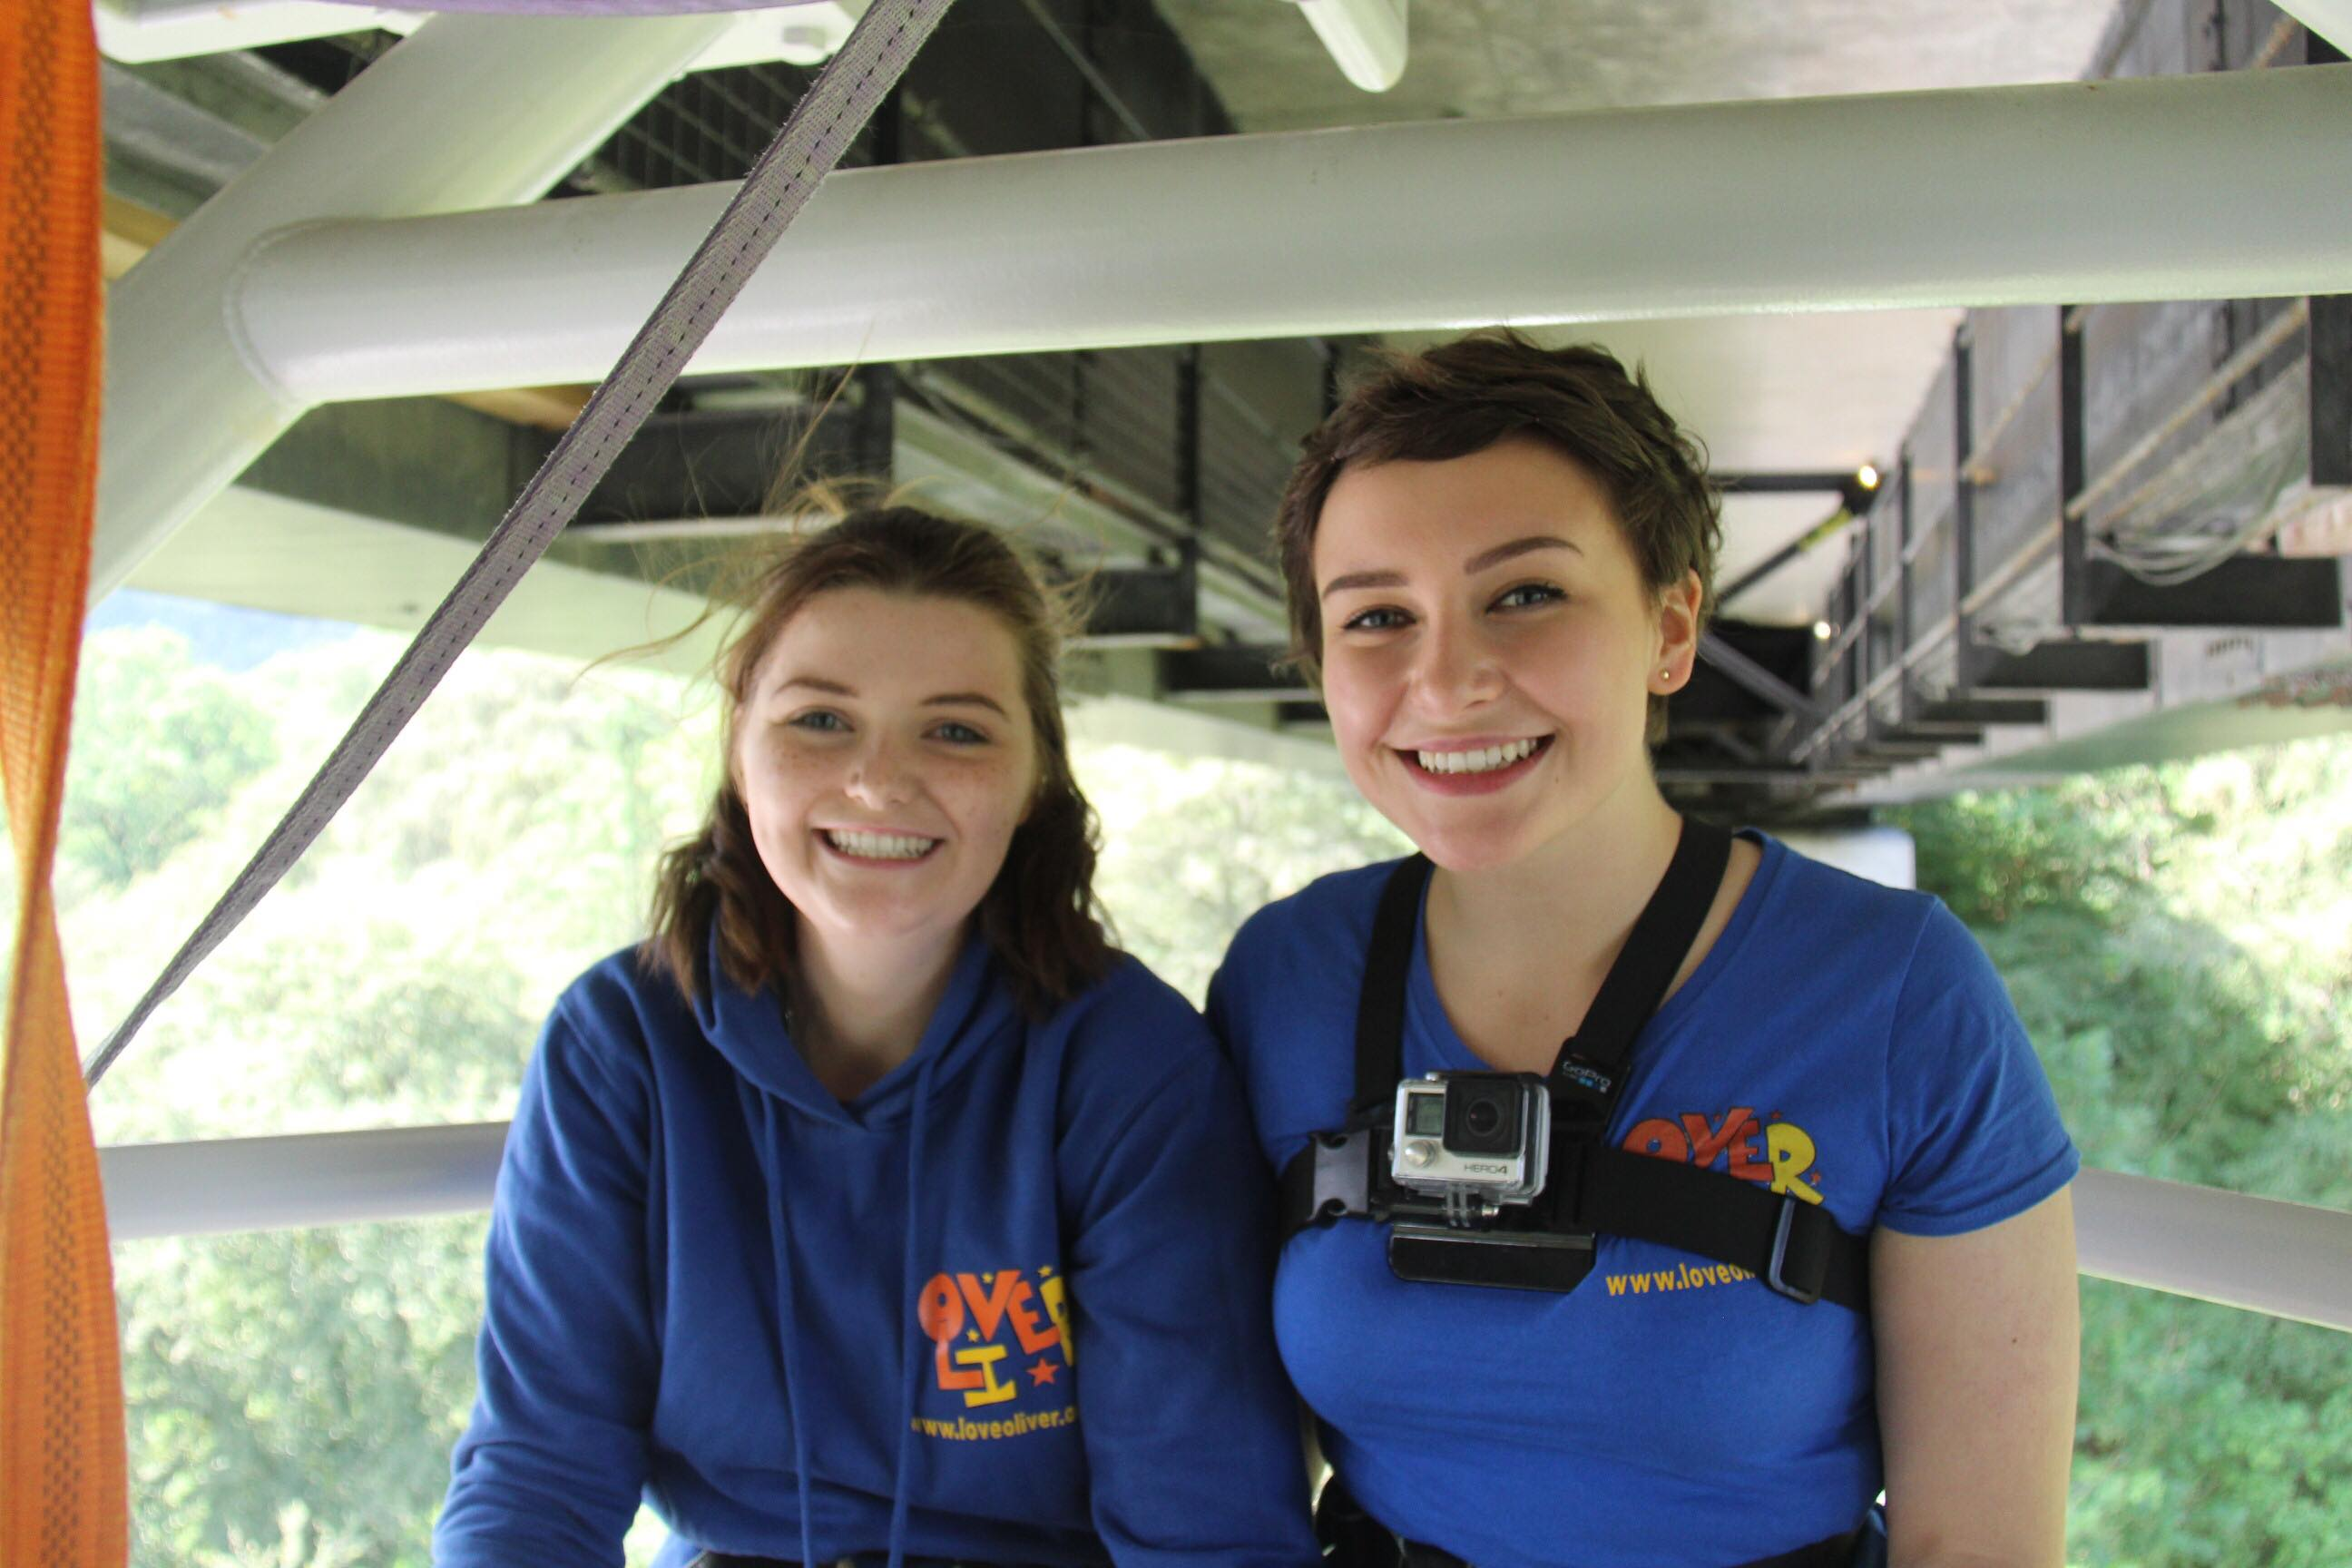 Jade Dowie (left) and best friend Jasmine Doyle did a bungee jump to celebrate Jade being cancer-free for two years.